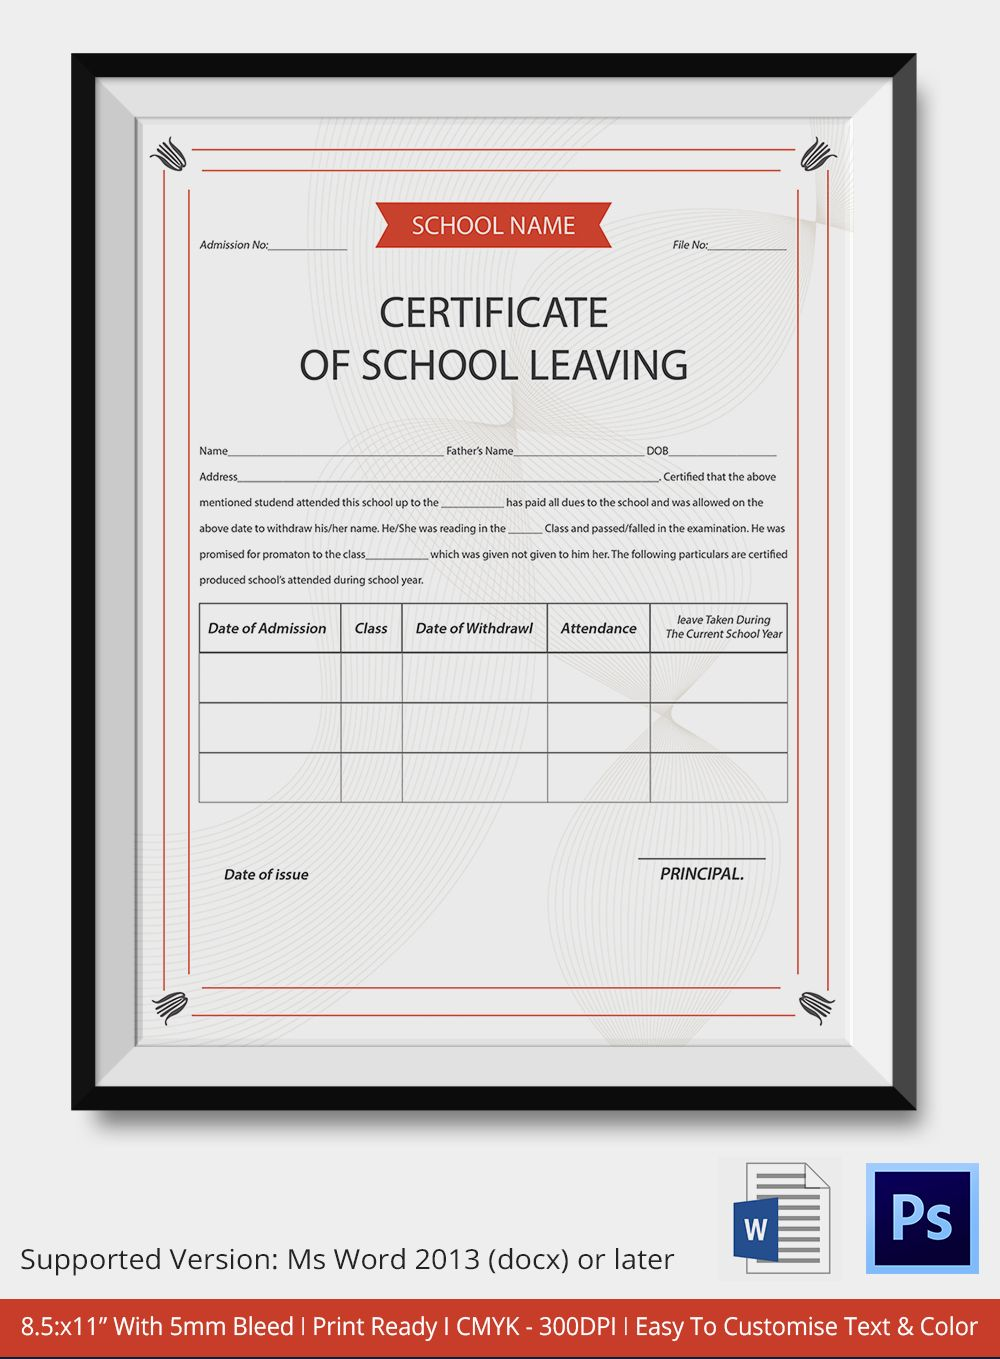 School leaving certificate template certificate templates school leaving certificate template yadclub Gallery